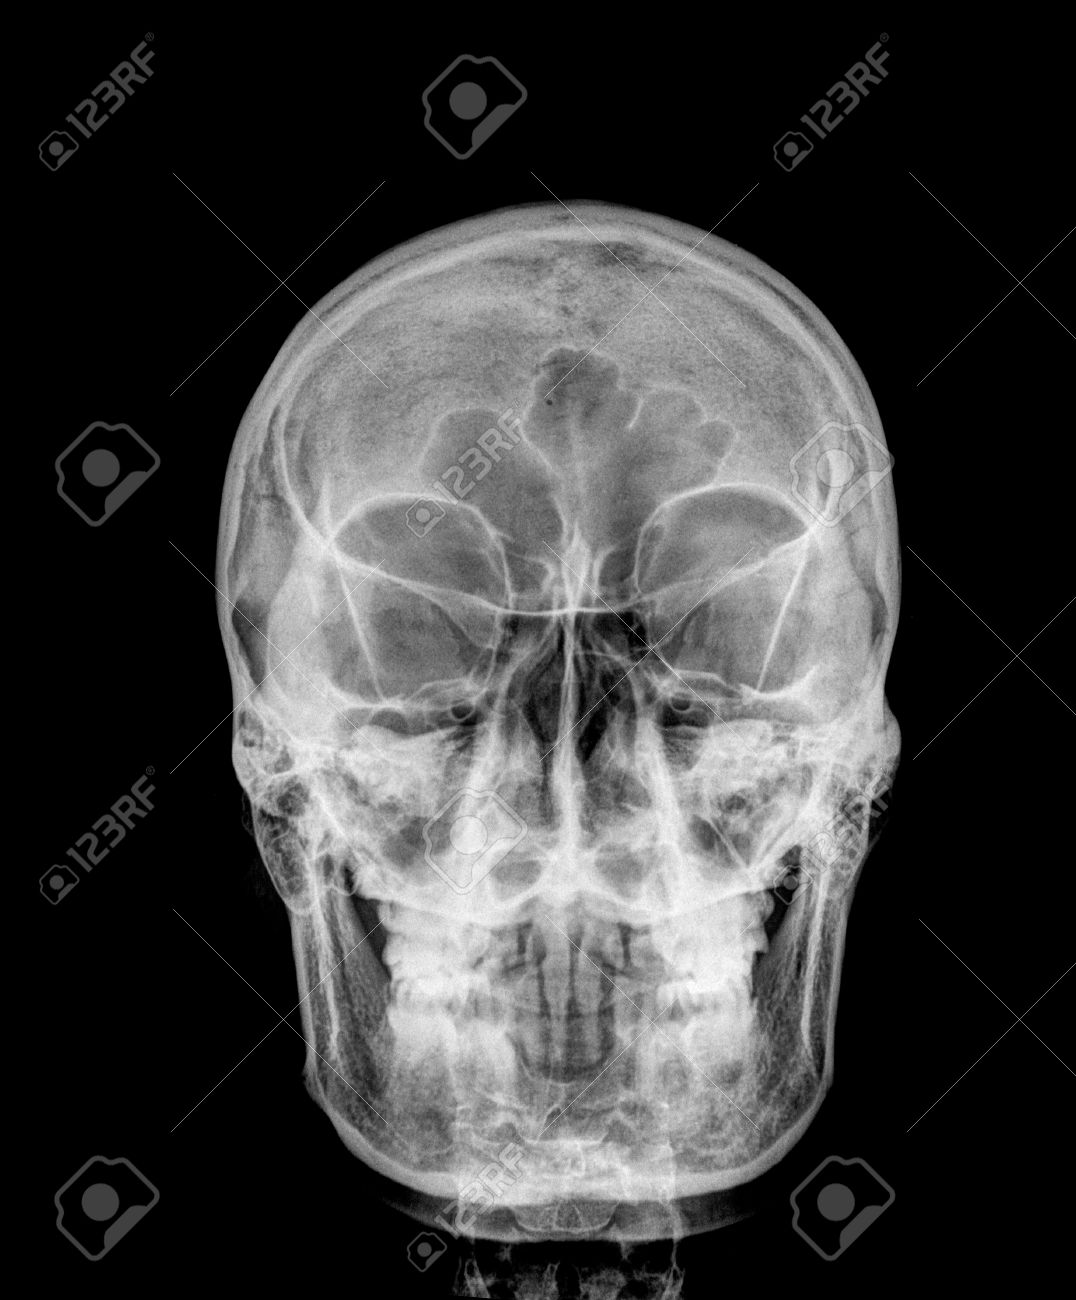 Front Face Skull X-ray Image Stock Photo, Picture And Royalty Free ...